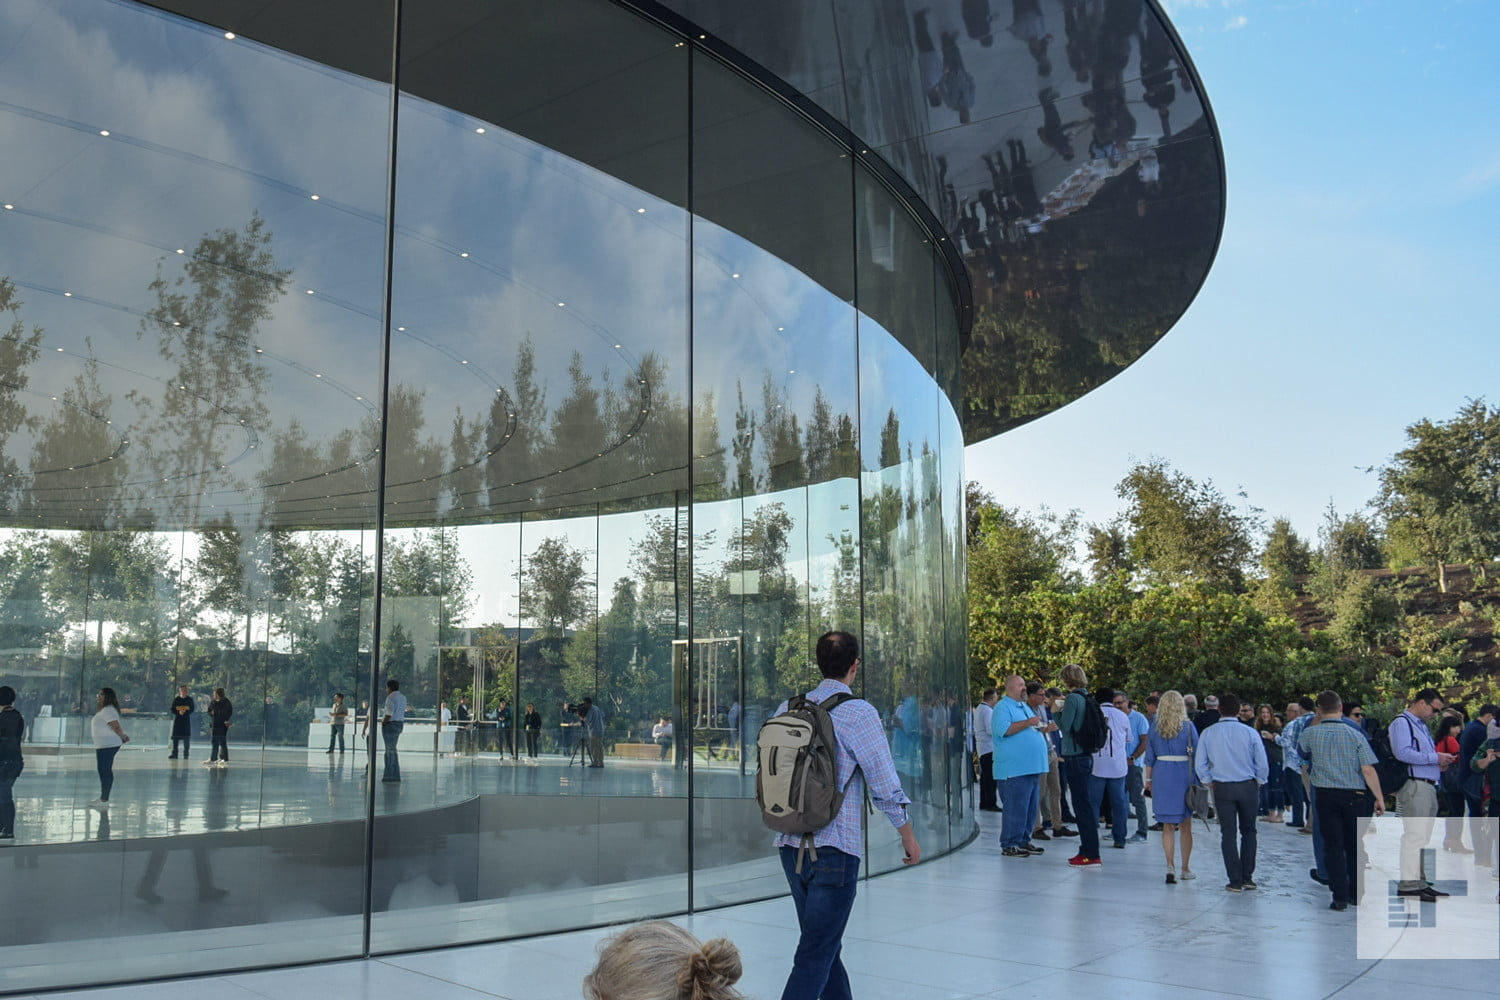 Distracted' Apple Park Workers Are Walking Into Its Glass